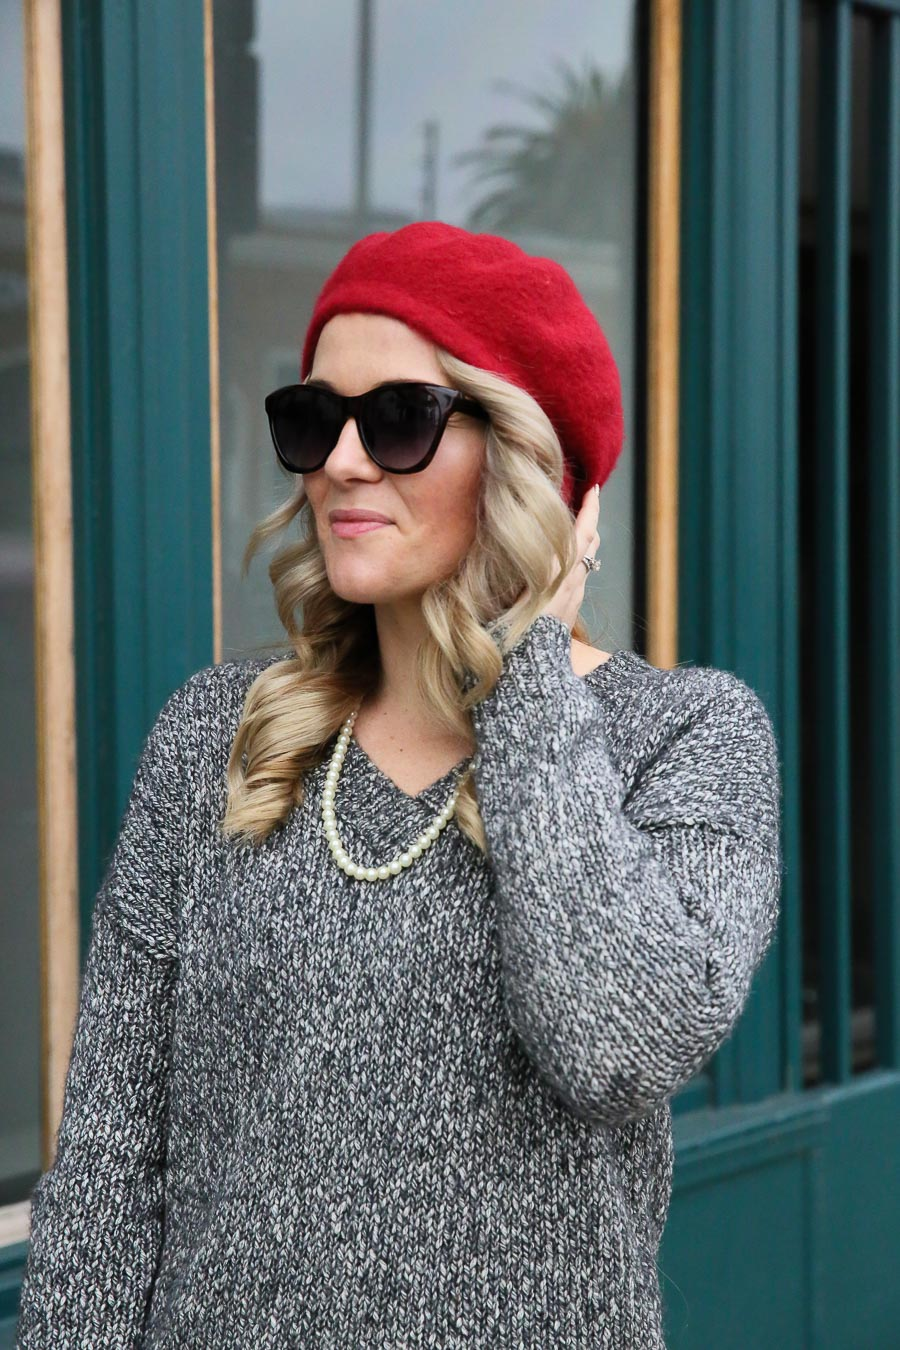 Red Pumps Outfit with Red Beret